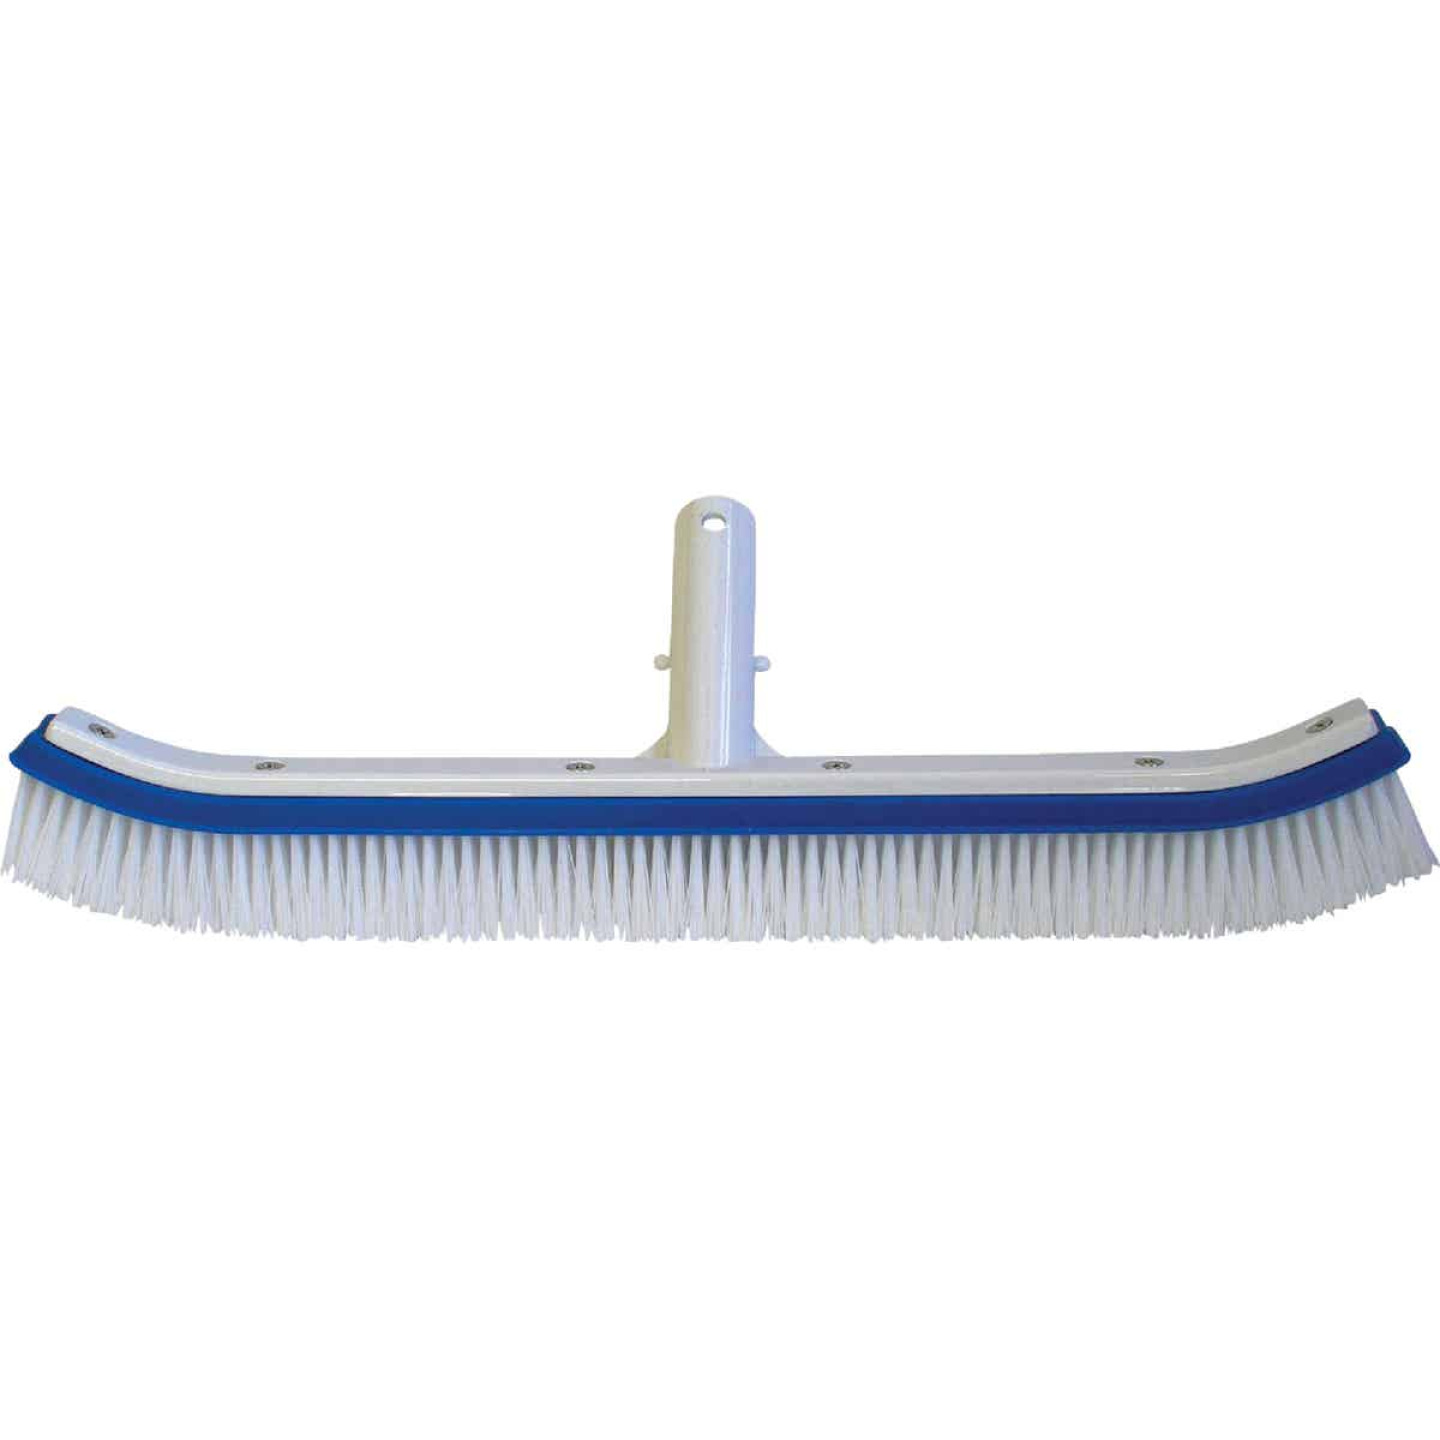 Jed Pool 18 In. L. Plypropylene Bristles Aluminum Back Curved Wall Brush Image 1